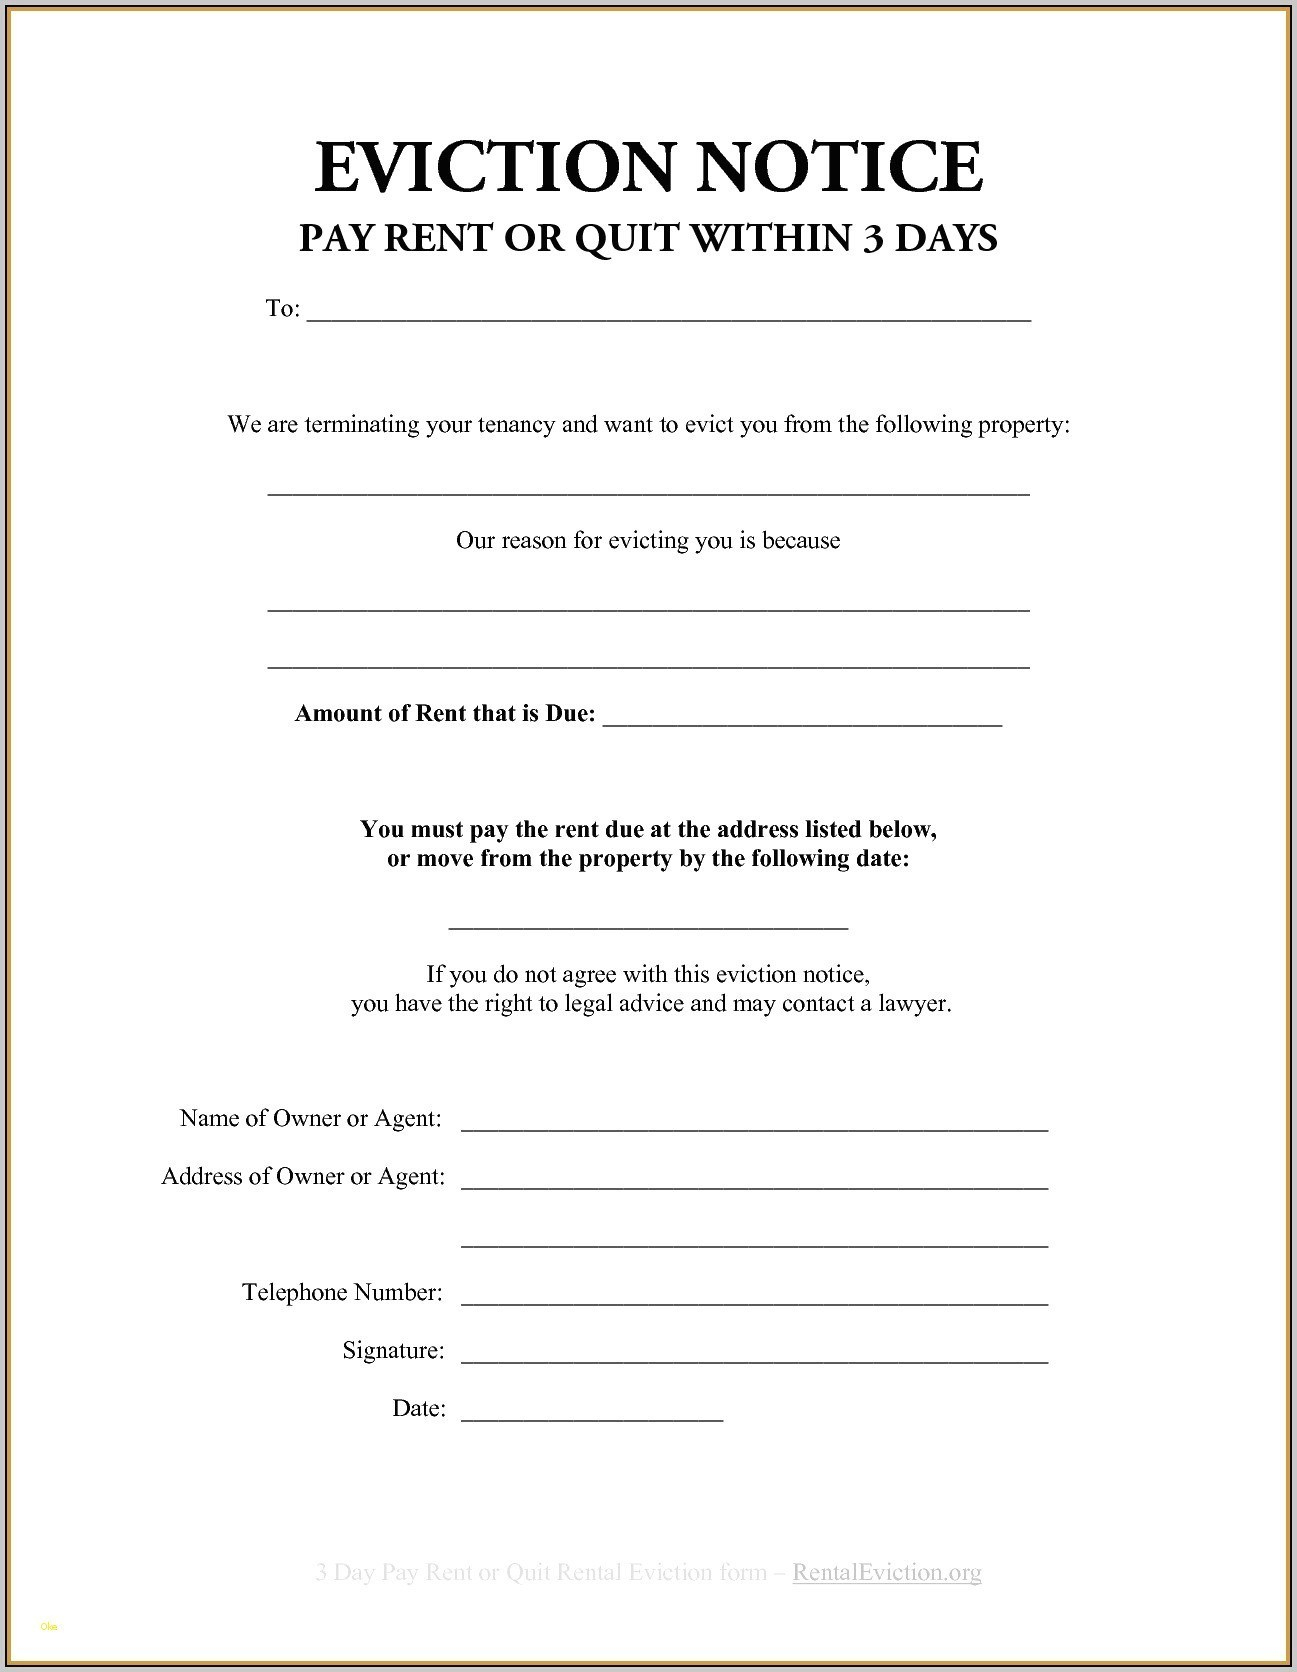 Sample Eviction Notice Letter Printable Form Template Free Notices - Free Printable Blank Eviction Notice